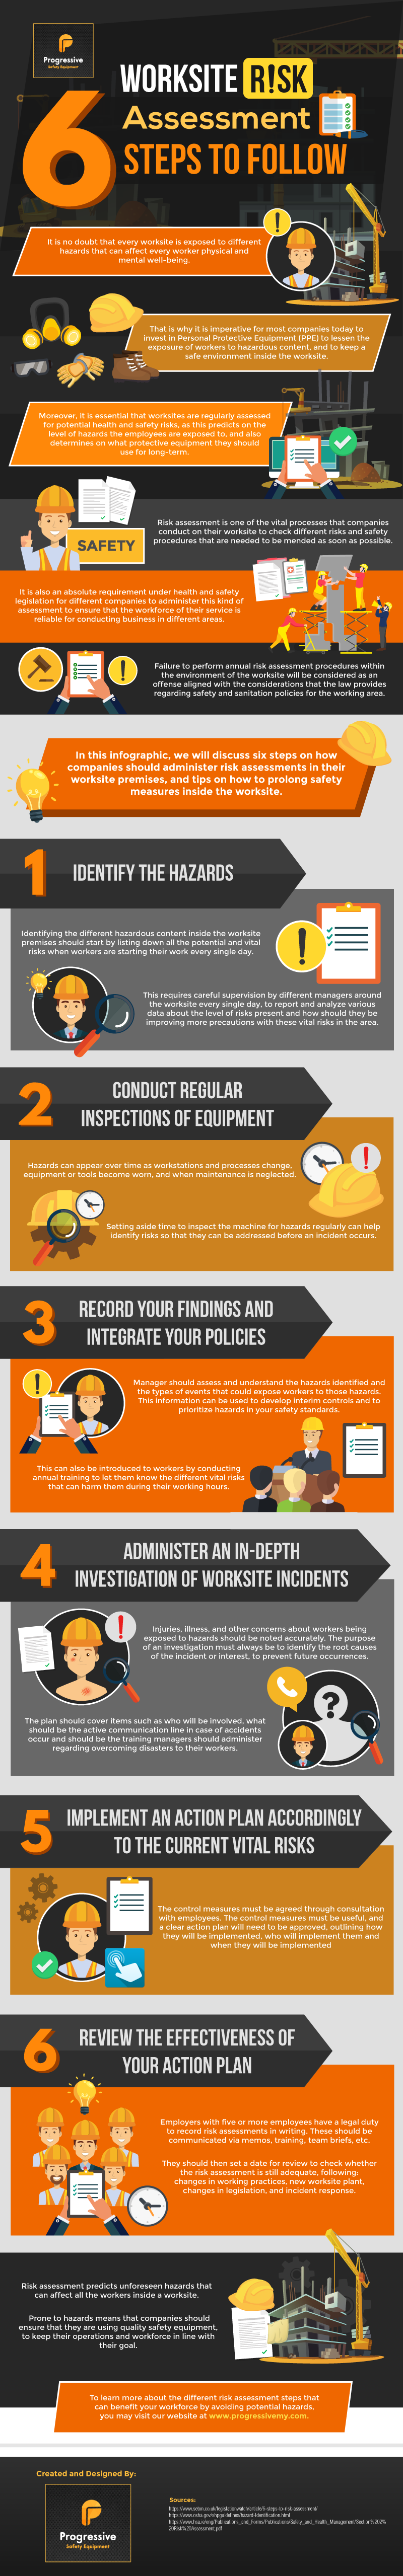 Work site Risk Assessment: 6 Steps to Follow (Infographic)